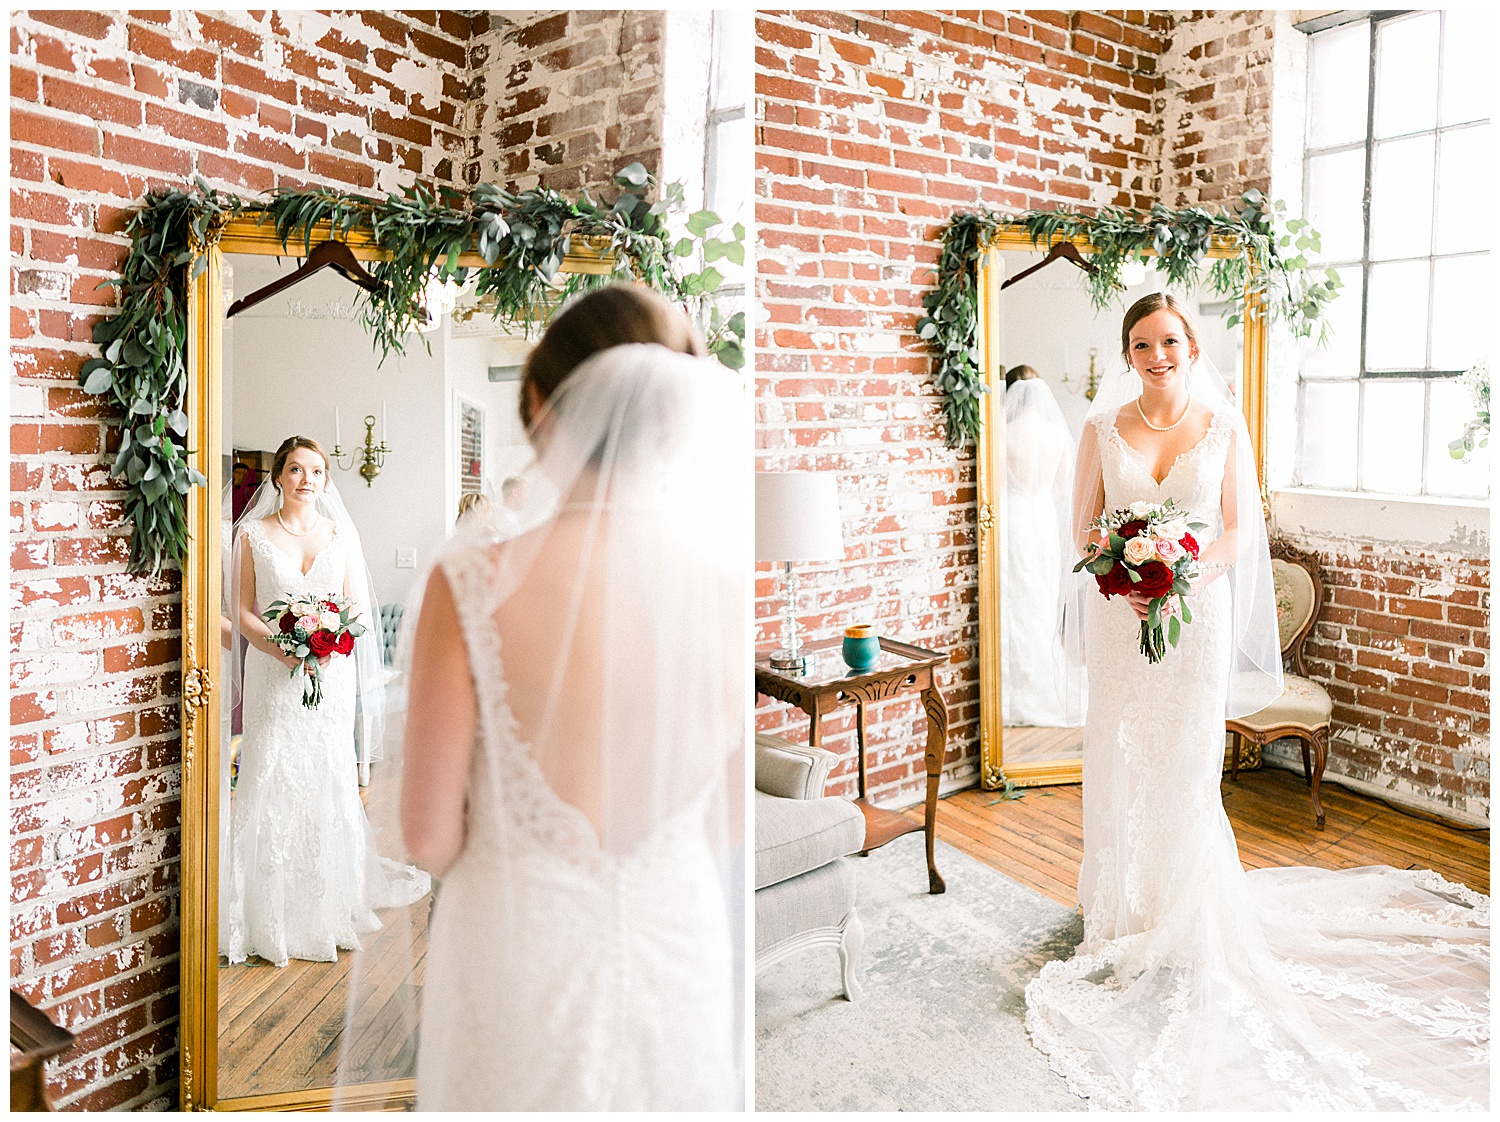 jayne-miles-409-south-main-memphis-wedding-photographer-mary-kate-steele-photography